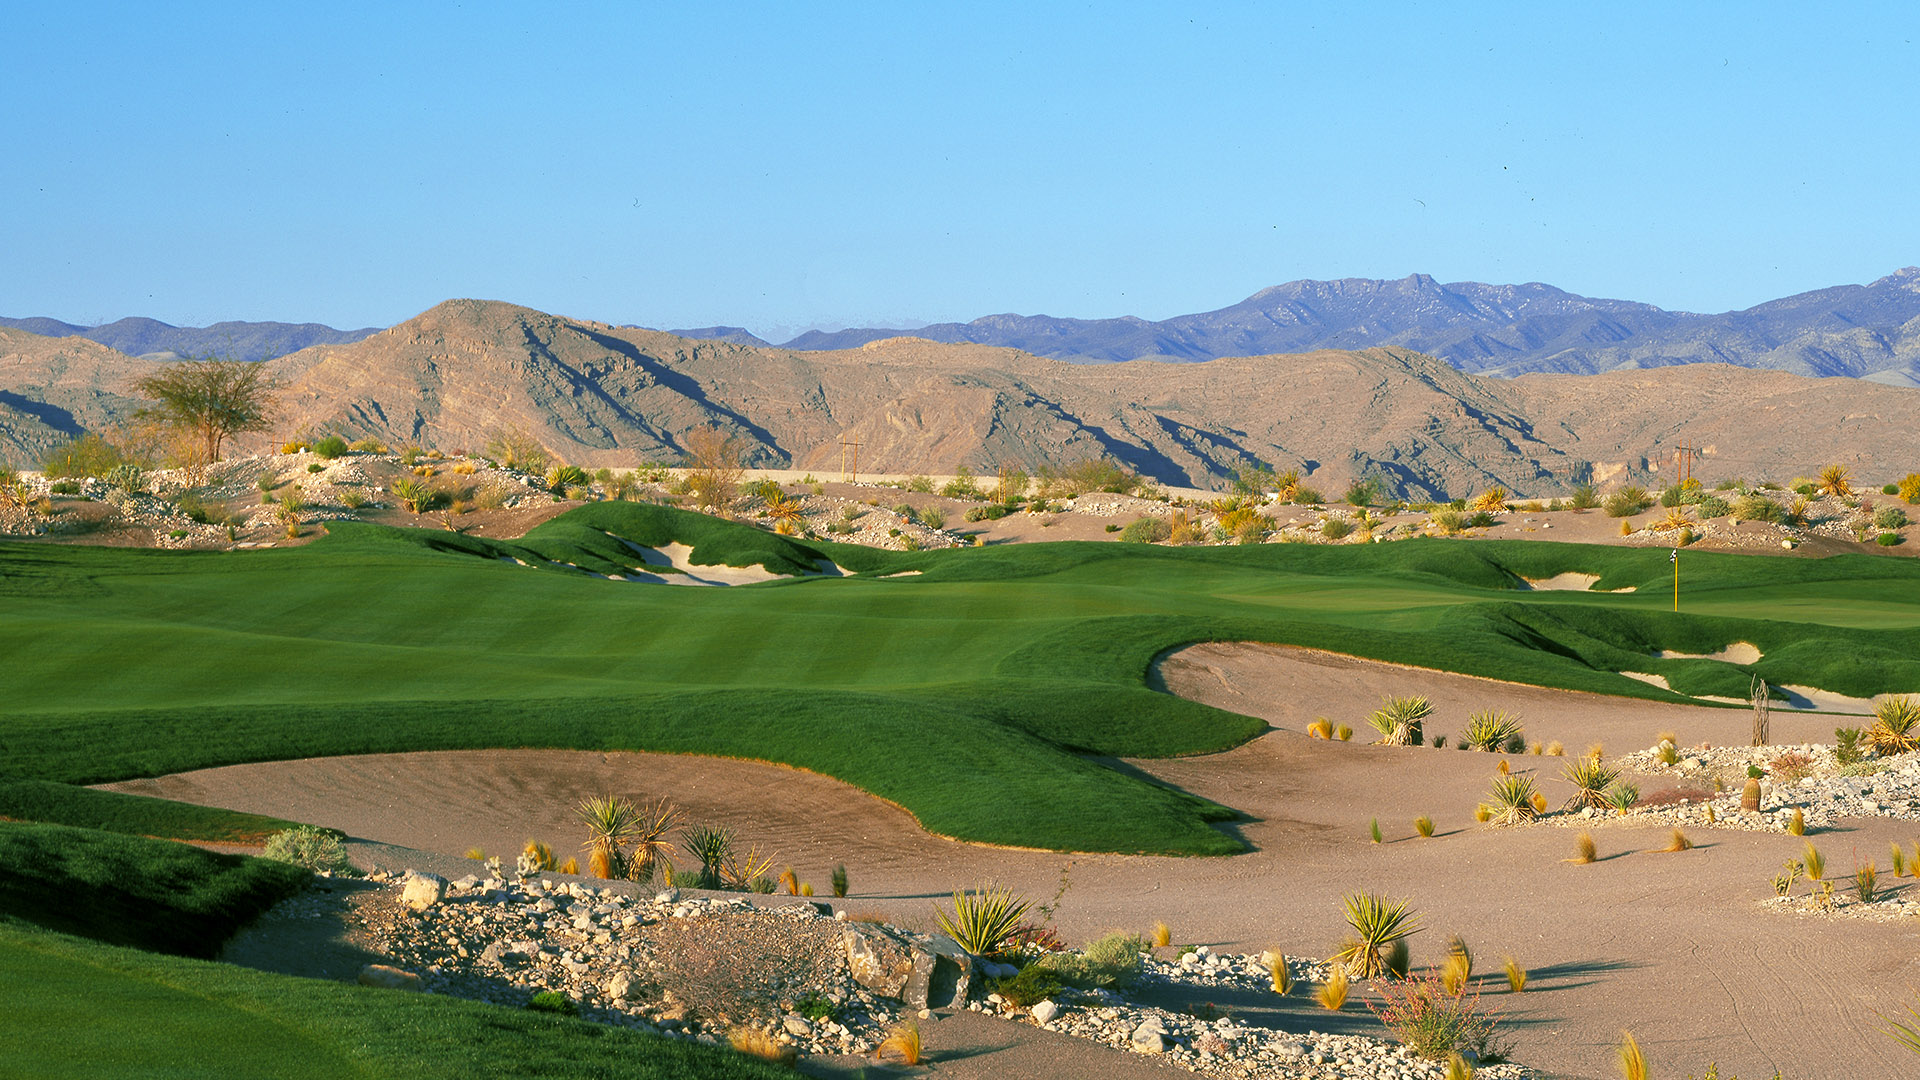 Coyote Springs Golf Club - Coyote Springs Golf Club Nevada ... on golf courses in vermont map, golf courses in tucson map, golf courses in indiana map, golf courses in cancun map,